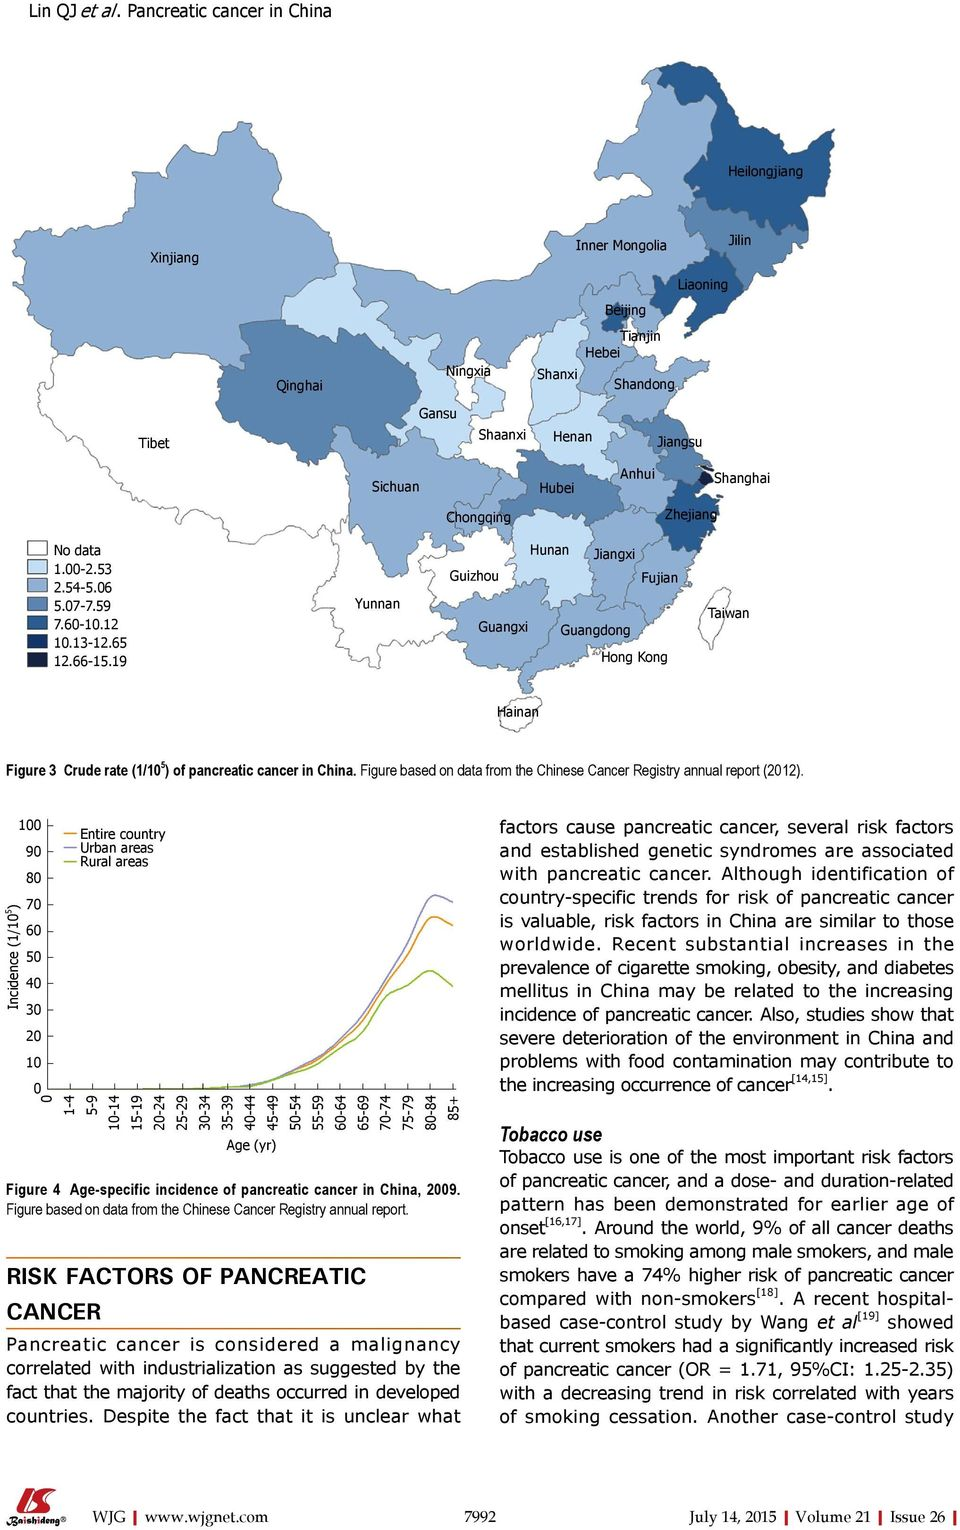 19 Yunnan Hunan Jiangxi Guizhou Fujian Guangxi Guangdong Hong Kong Taiwan Hainan Figure 3 Crude rate (1/10 5 ) of pancreatic cancer in China.